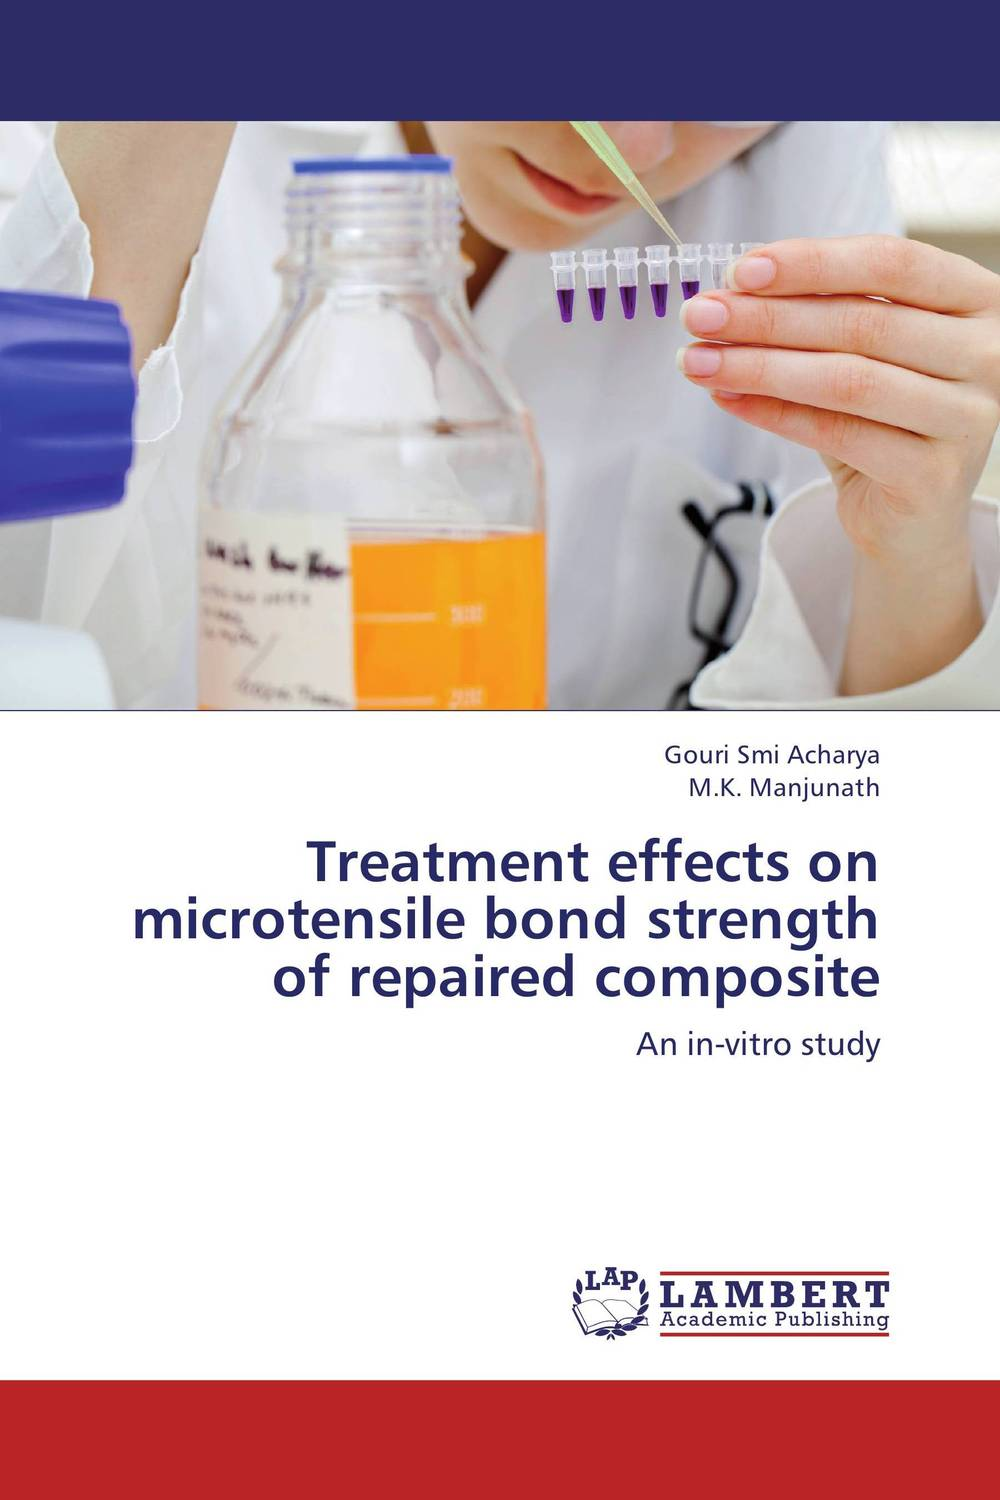 Treatment effects on microtensile bond strength of repaired composite treatment effects on microtensile bond strength of repaired composite